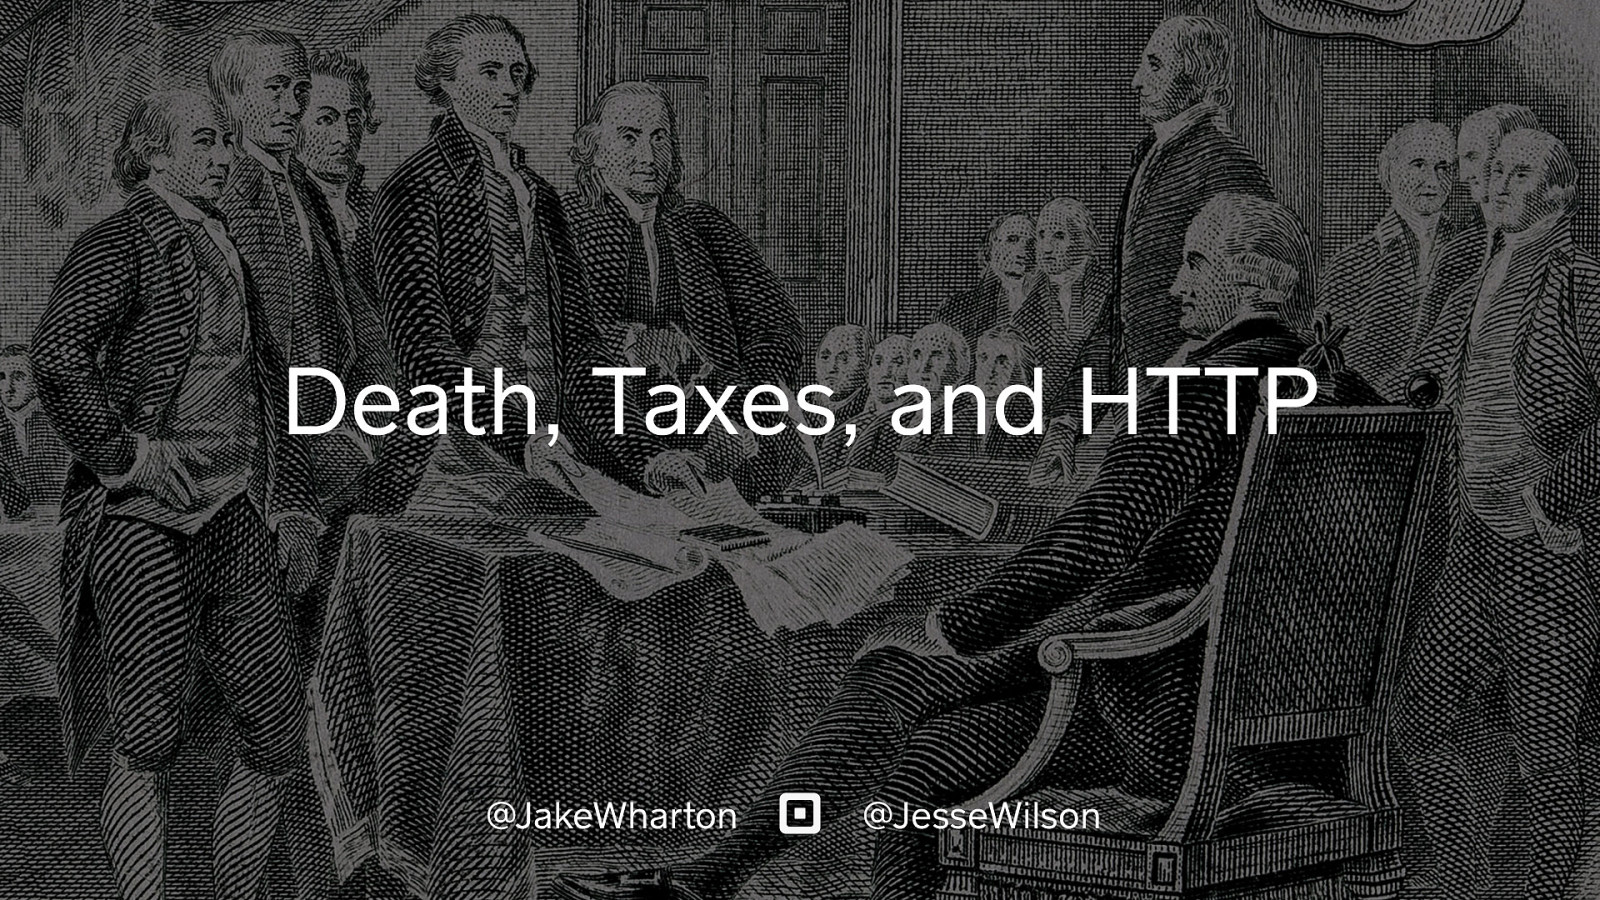 Death, Taxes, and HTTP